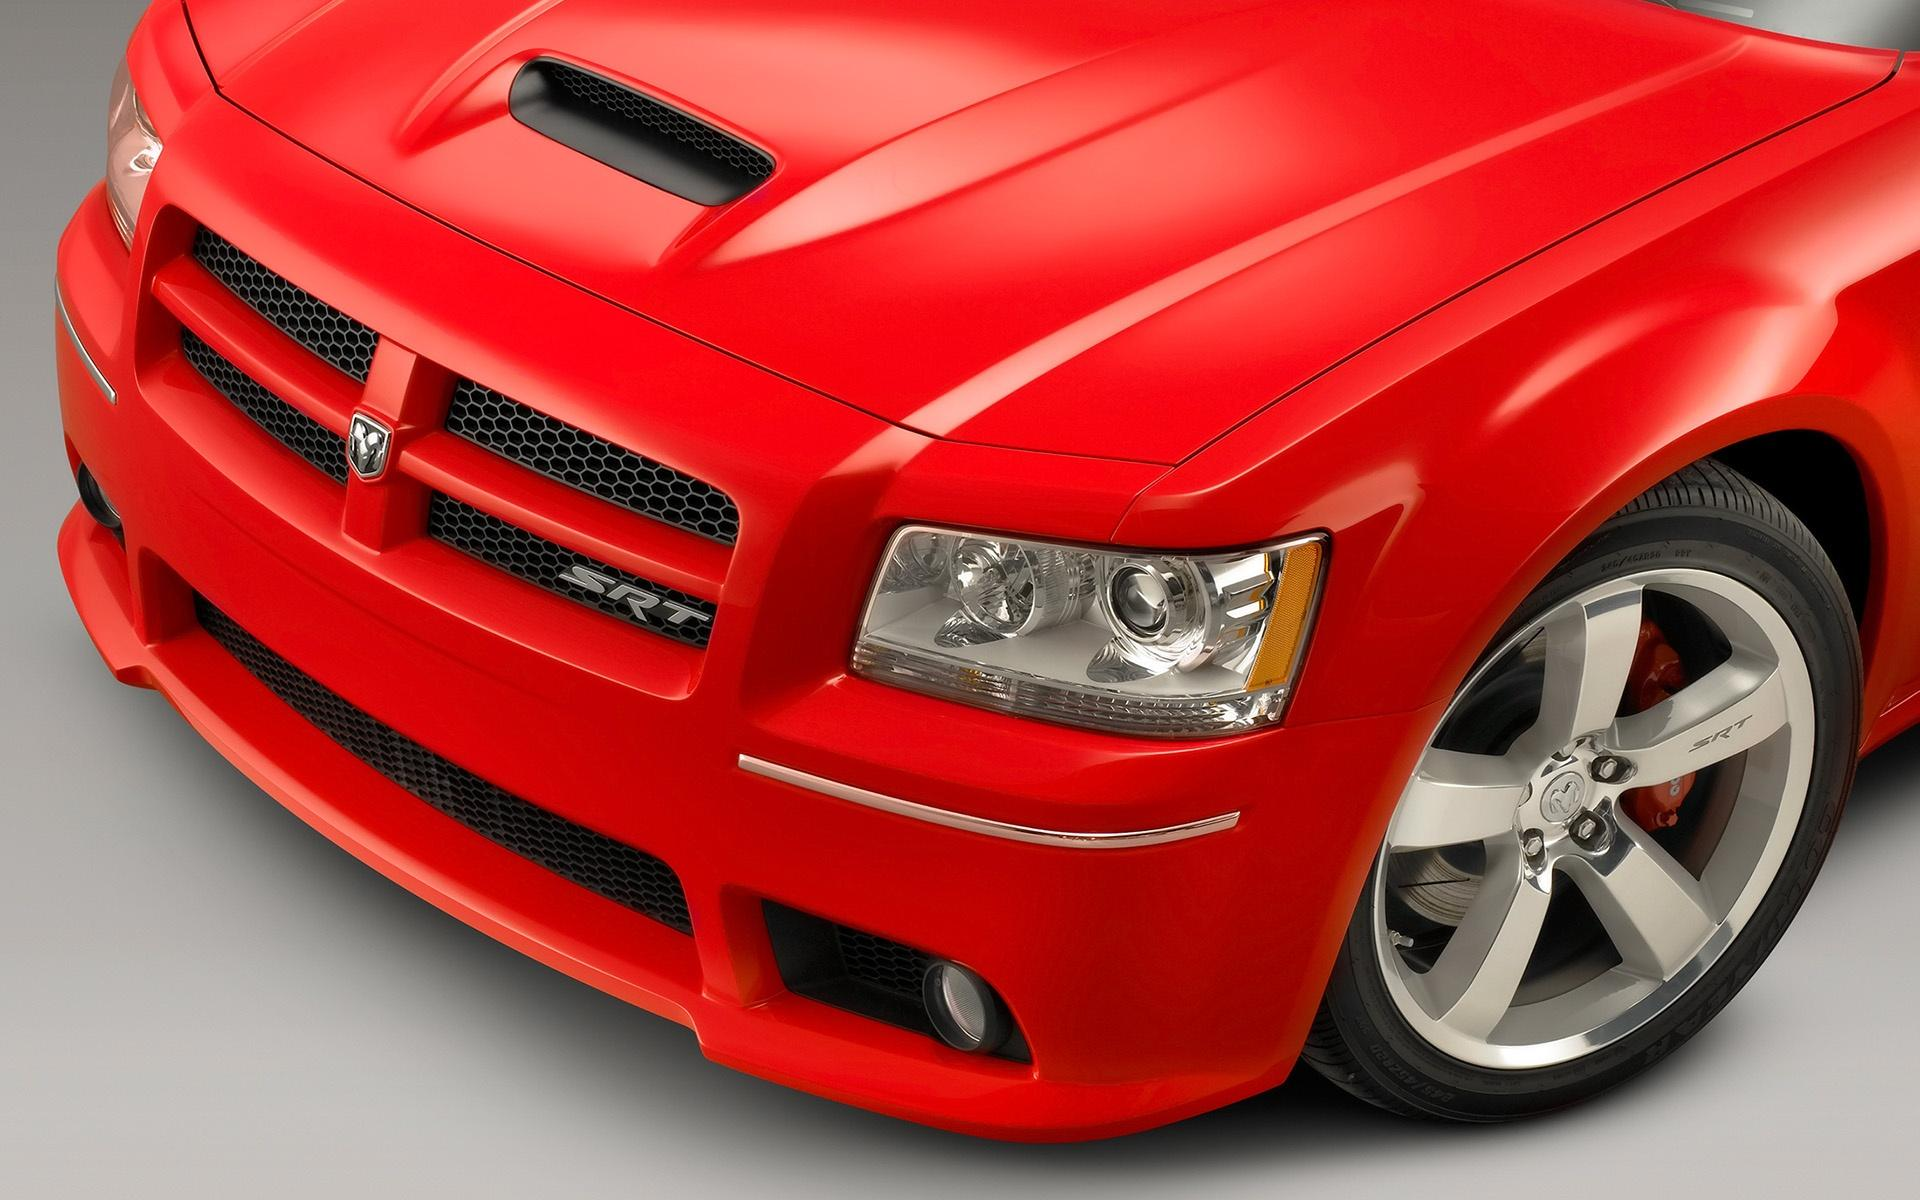 2008 Dodge Magnum Srt8 Front Section 1920x1200